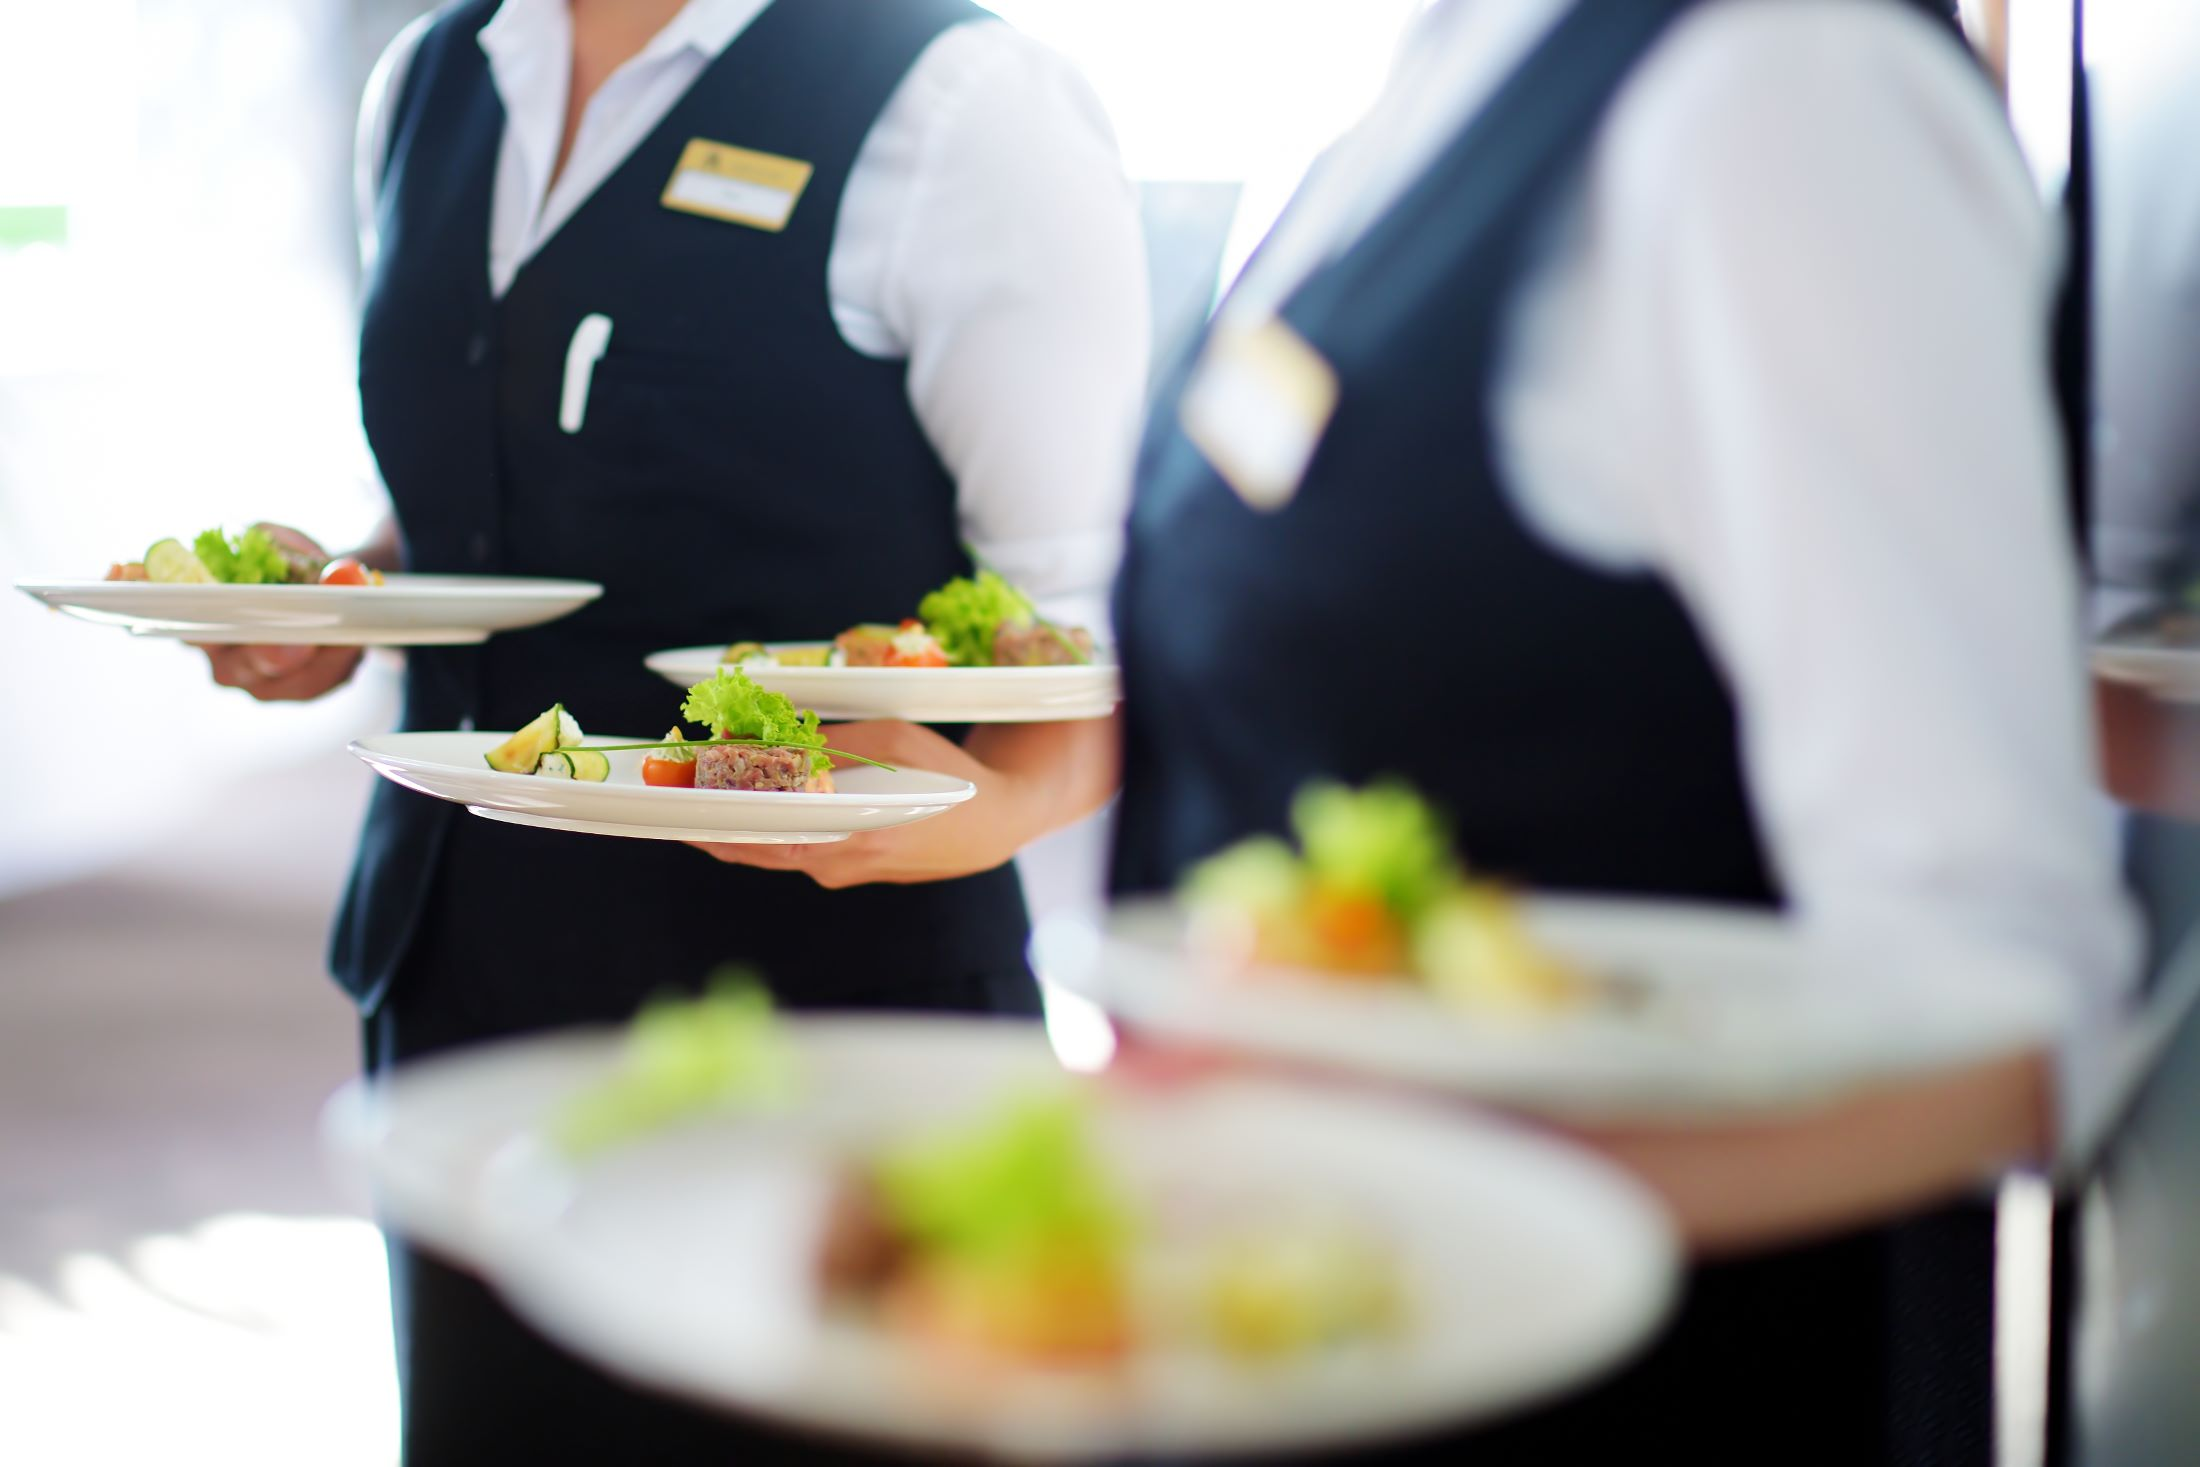 laundry service for caterers - wash and fold service for event planners - pickup and delivery laundry in sydney melbourne brisbane